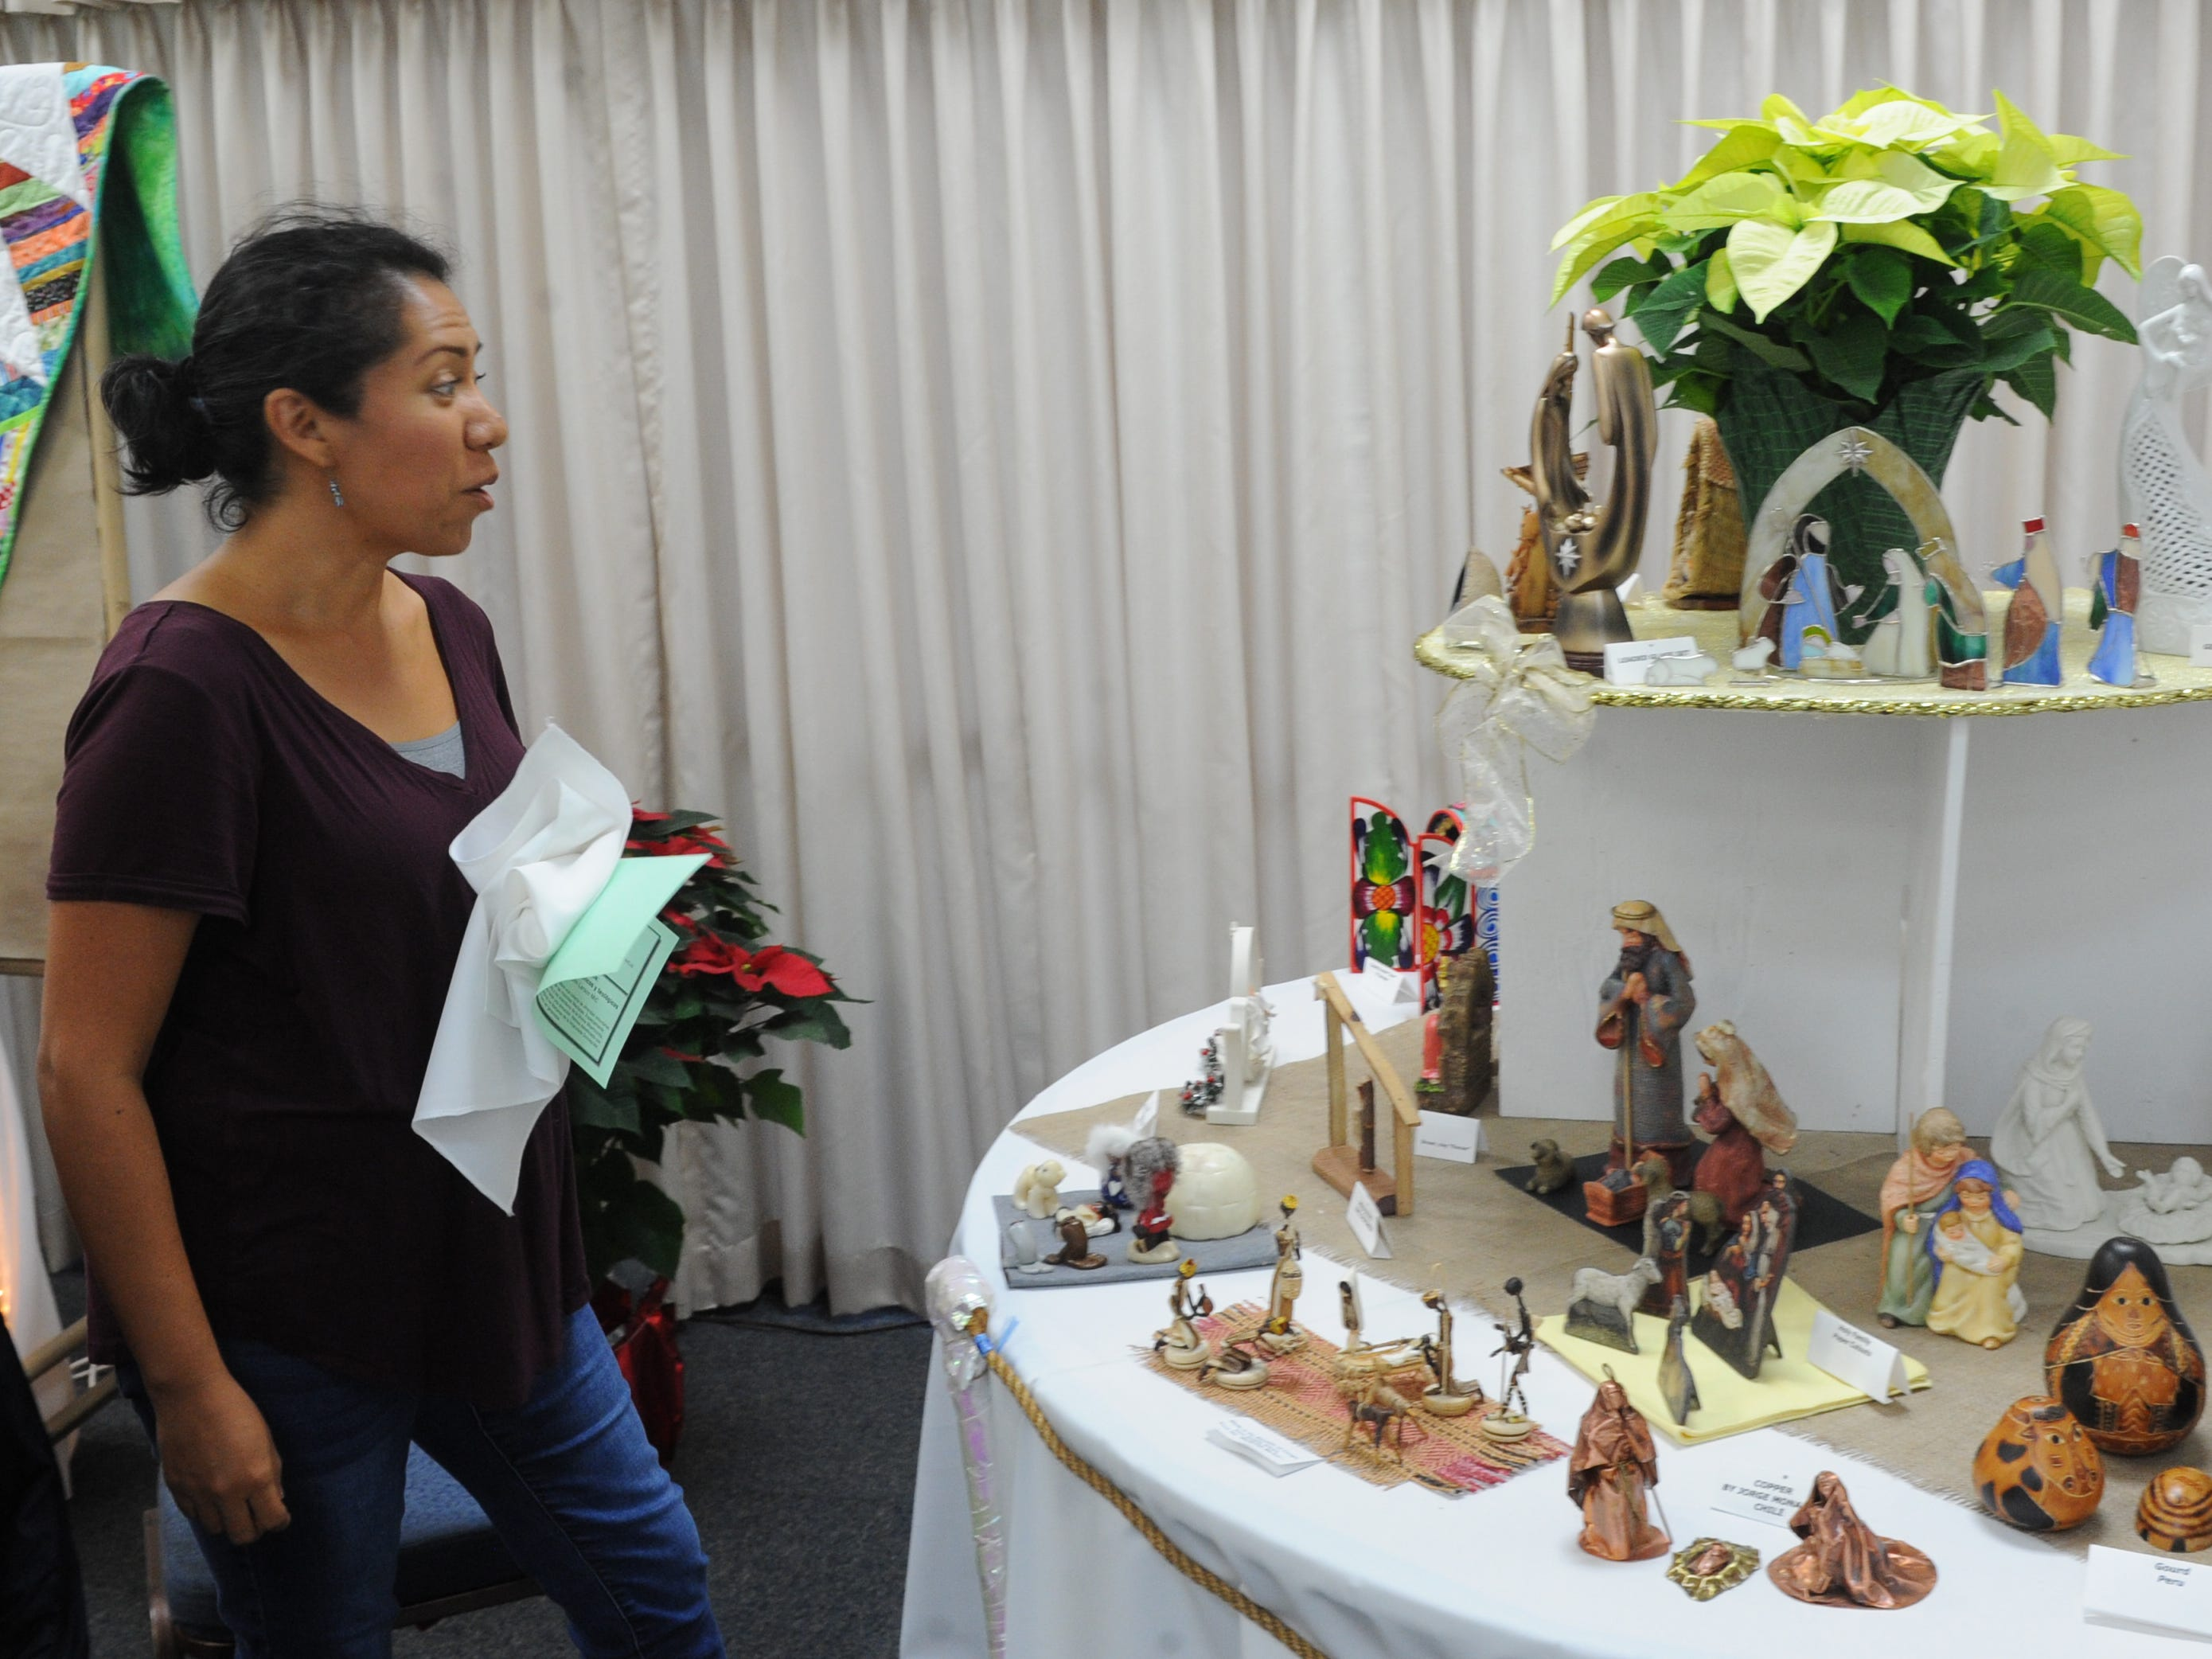 Yenelli Law admires a Nativity scene at the Camarillo United Methodist Church. A display runs through Sunday.